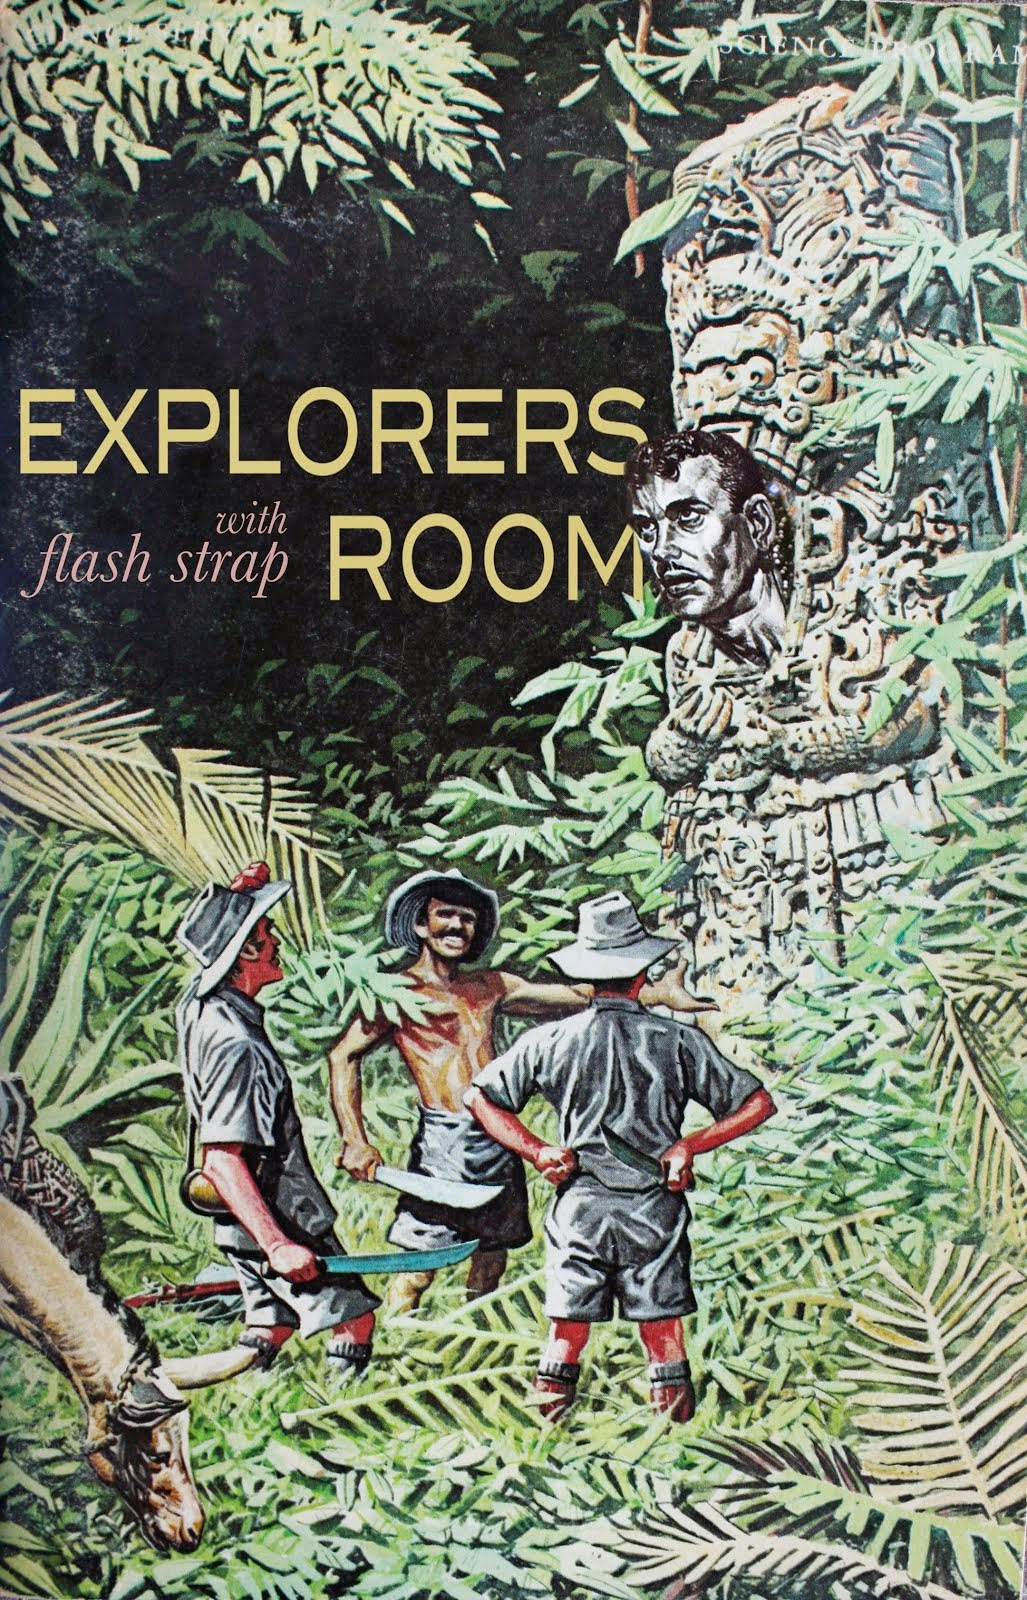 Explorers Room with Flash Strap on WFMU